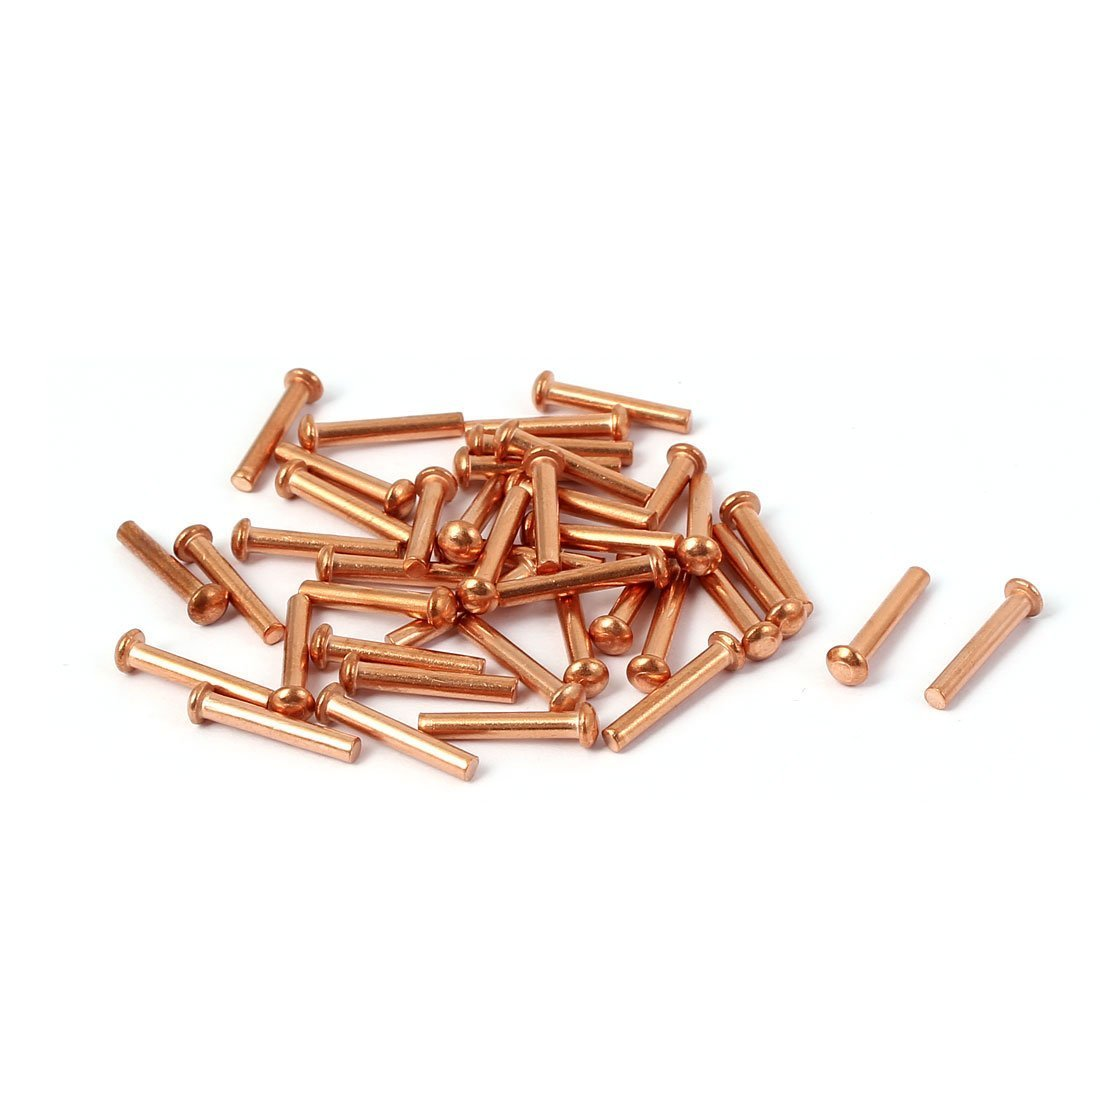 Uxcell a16041400ux0883 13mm Length 2mm x 12mm Round Head Copper Solid Rivets Fasteners Hardware 60 Pcs